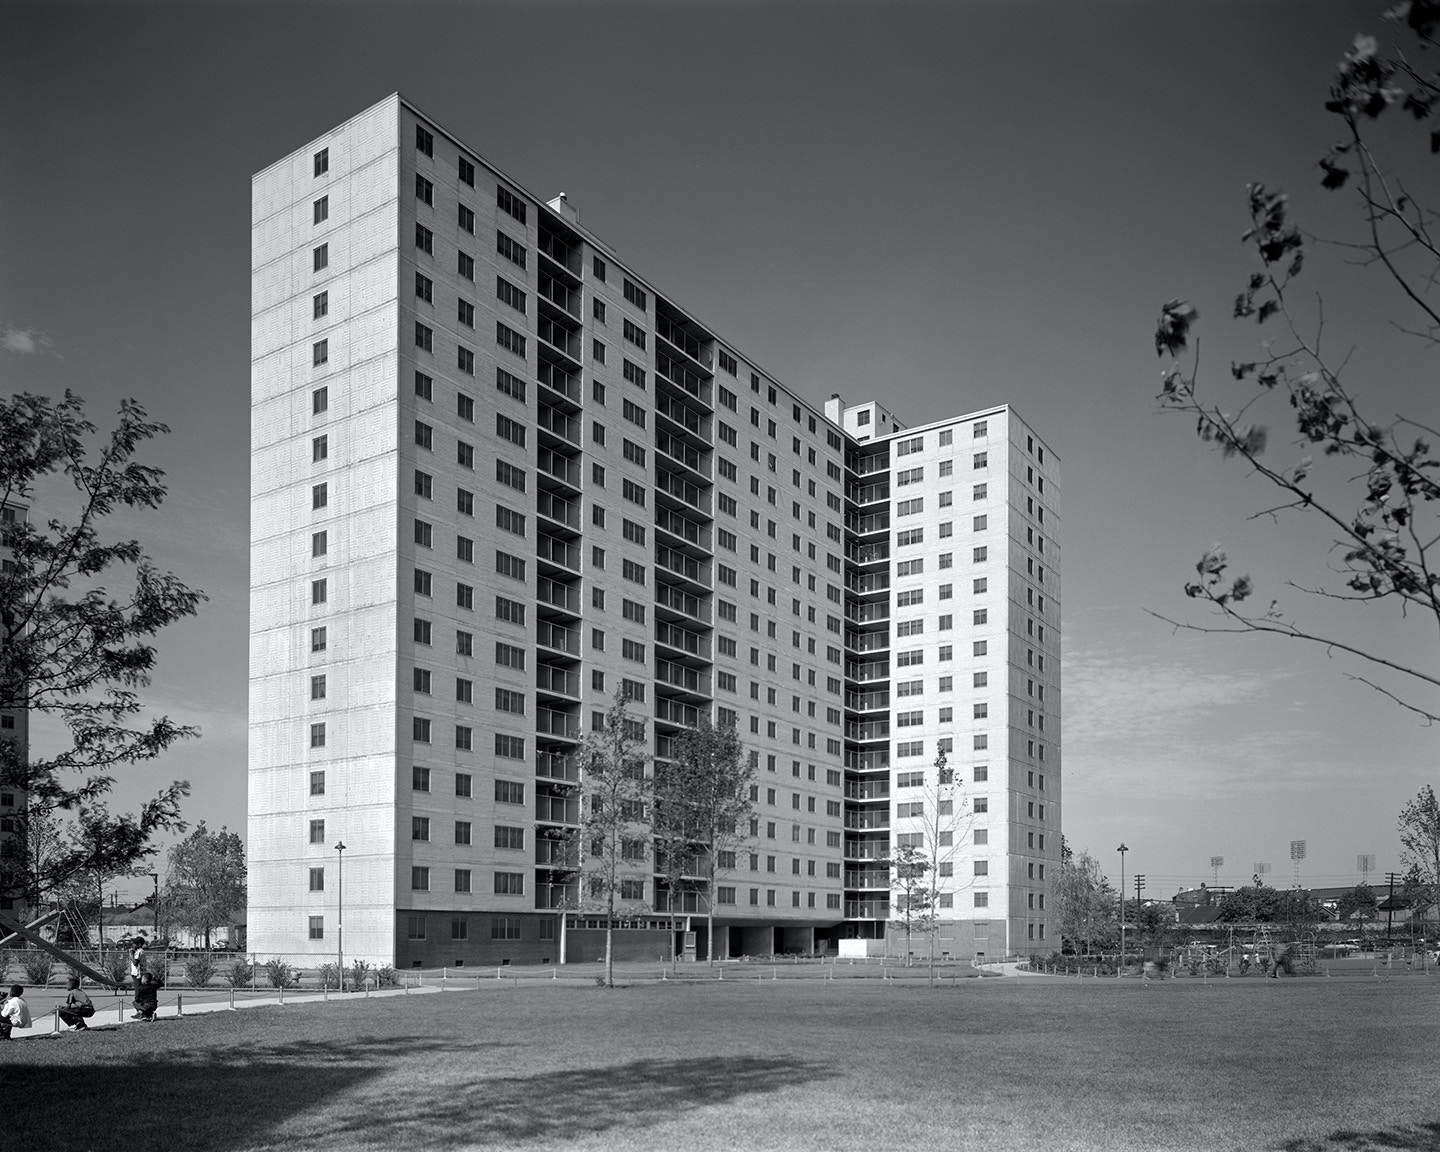 The Stateway Gardens housing project, in the Bronzeville neighborhood in Chicago's South Side, pictured in 1958.